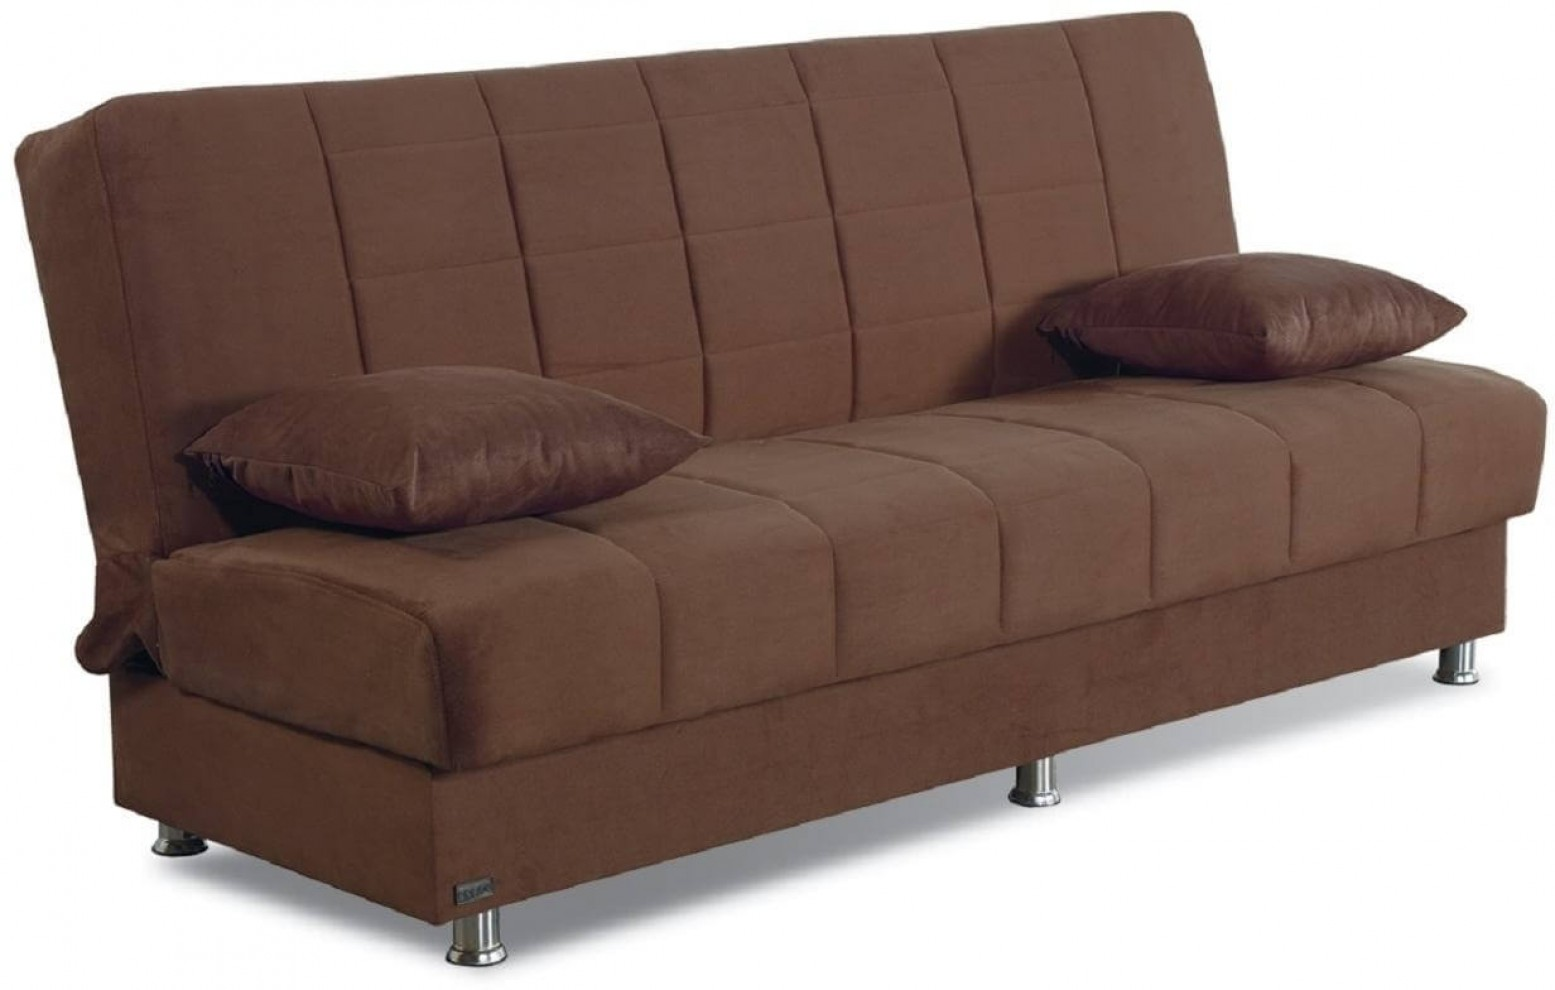 Hamilton Microfiber Storage Sofabed Brown By Empire Furniture Sohomod Com